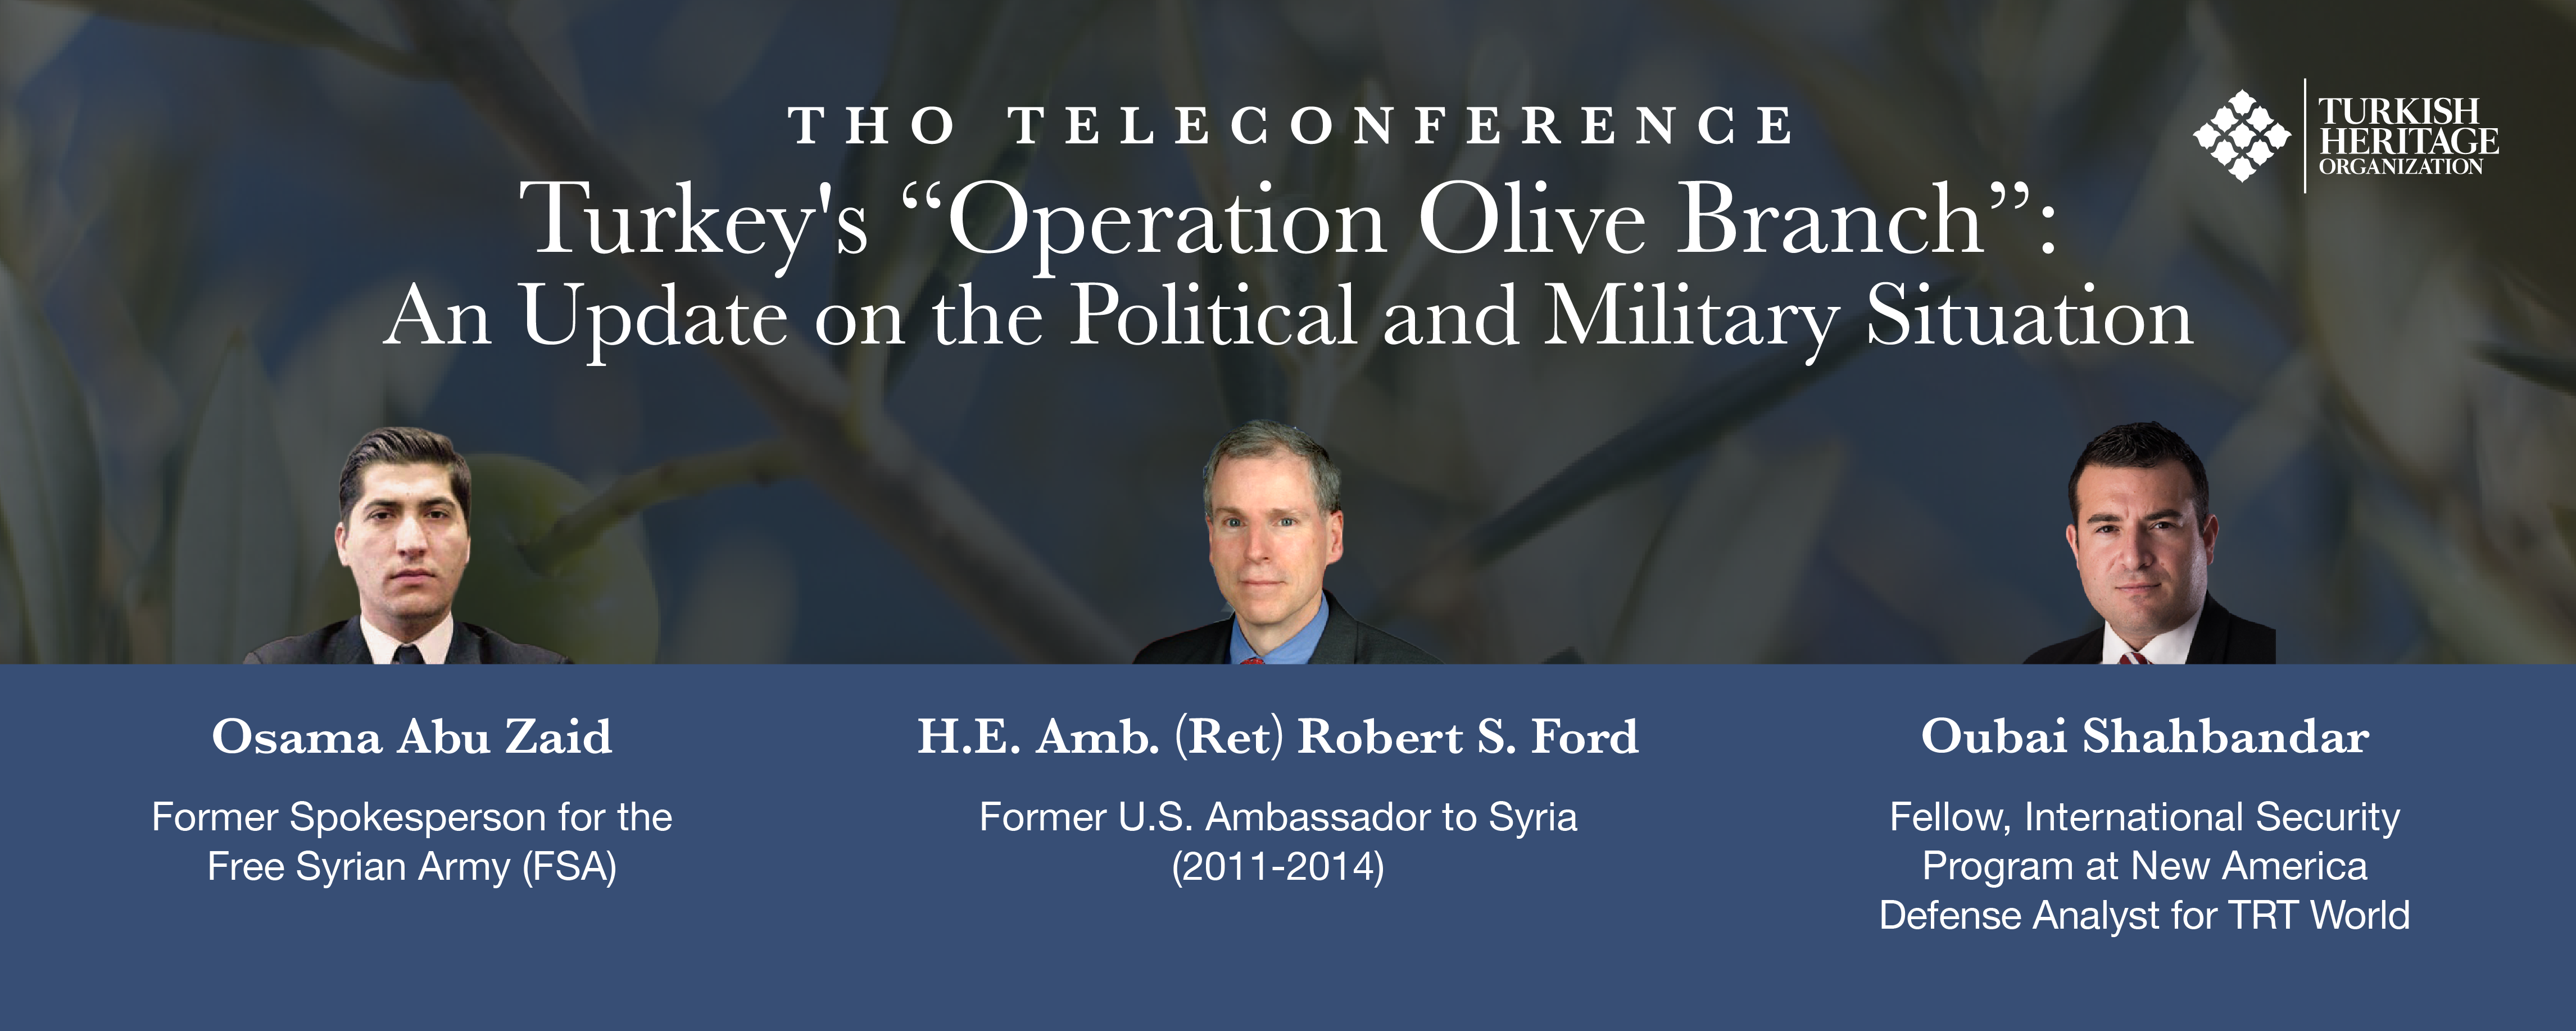 THO Teleconference Offers Update on Operation Olive Branch